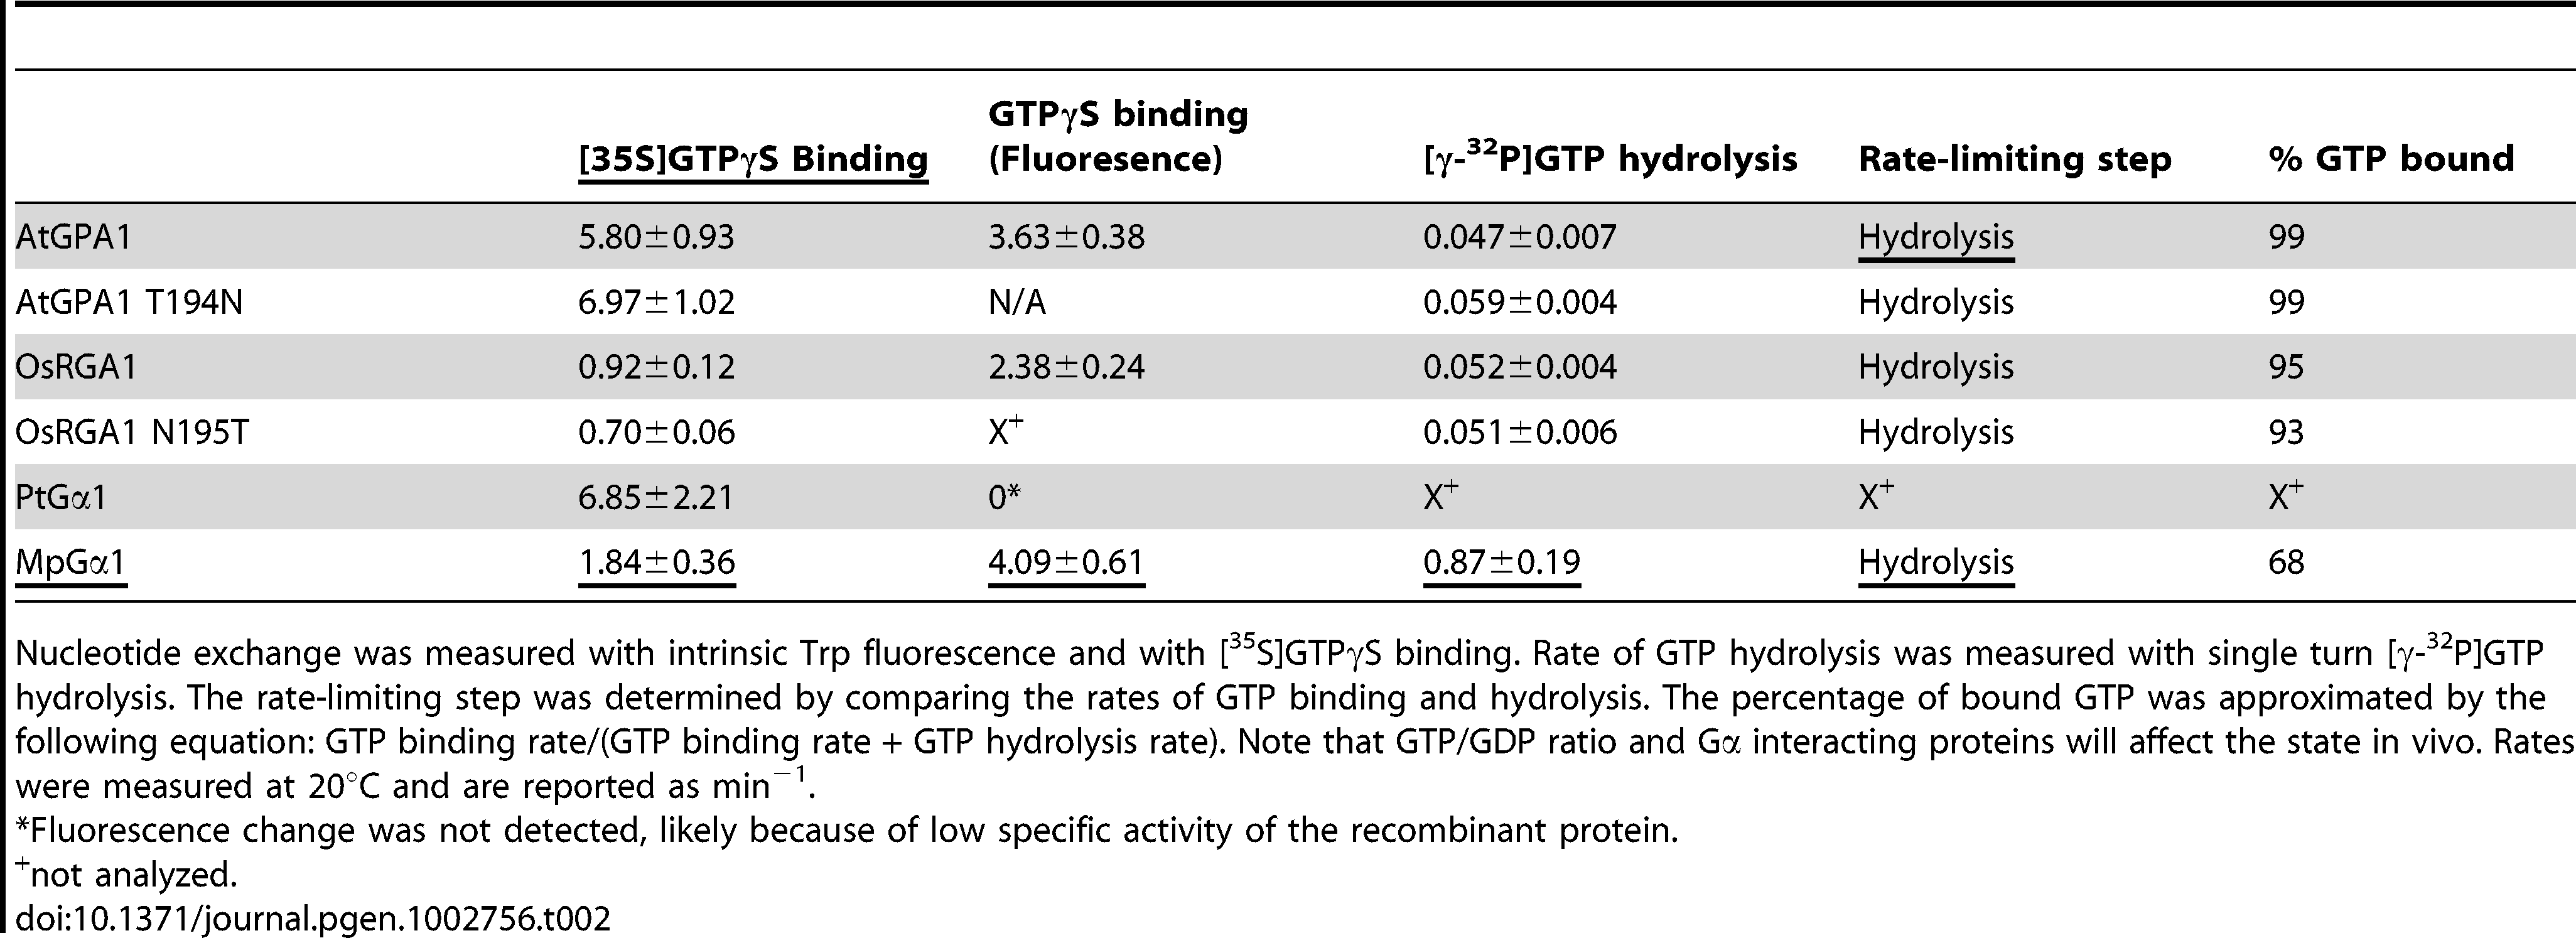 Rates of nucleotide exchange and GTP hydrolysis.